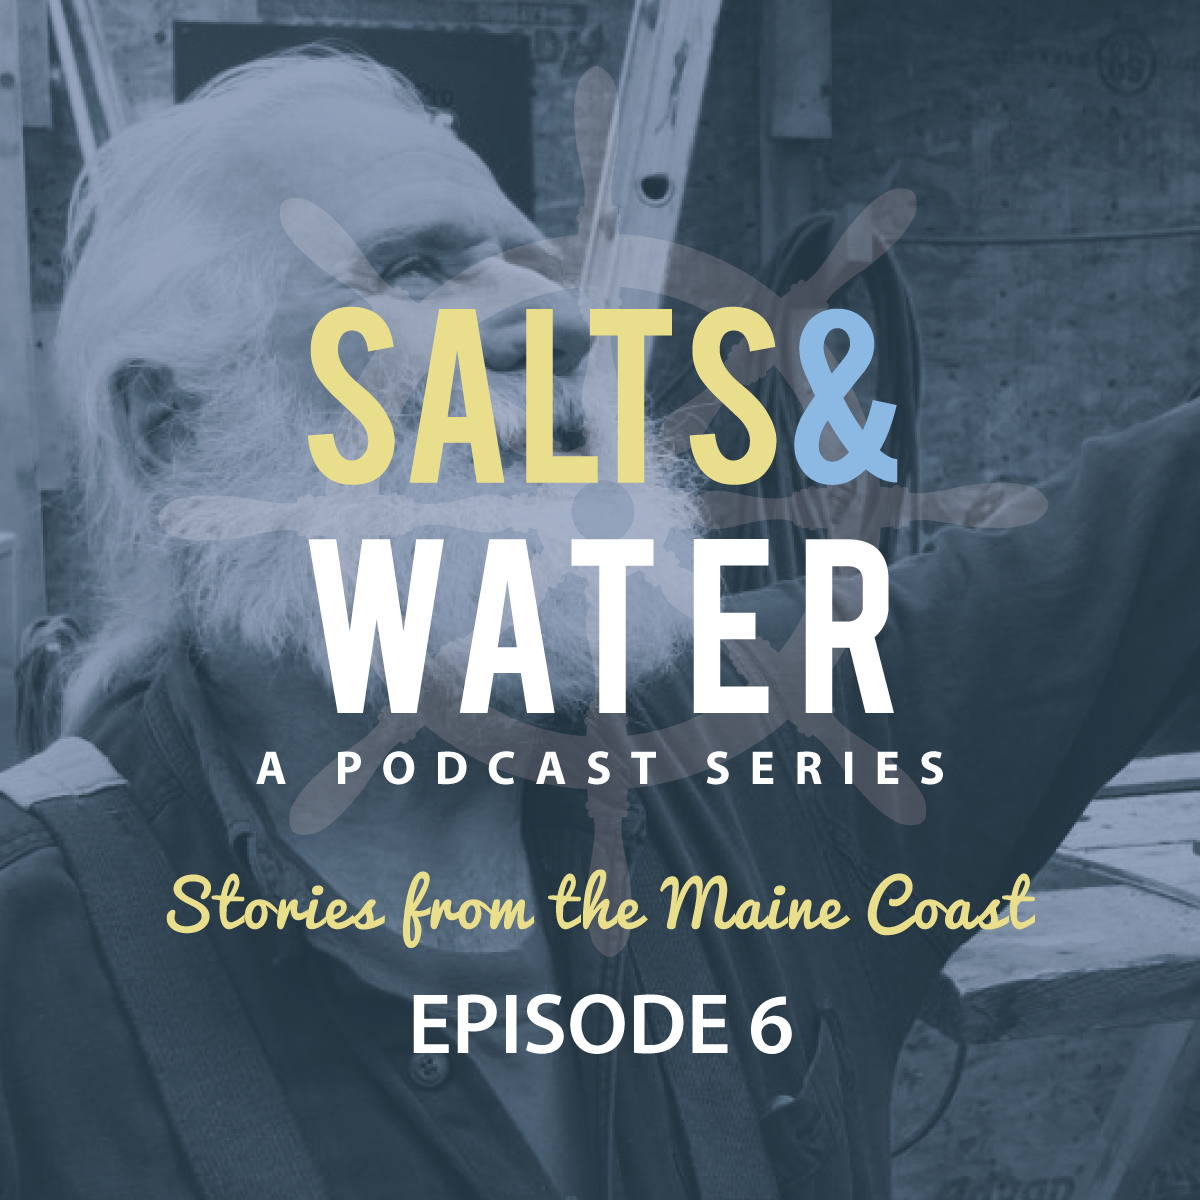 SALTS-AND-WATER-EPISODE-6